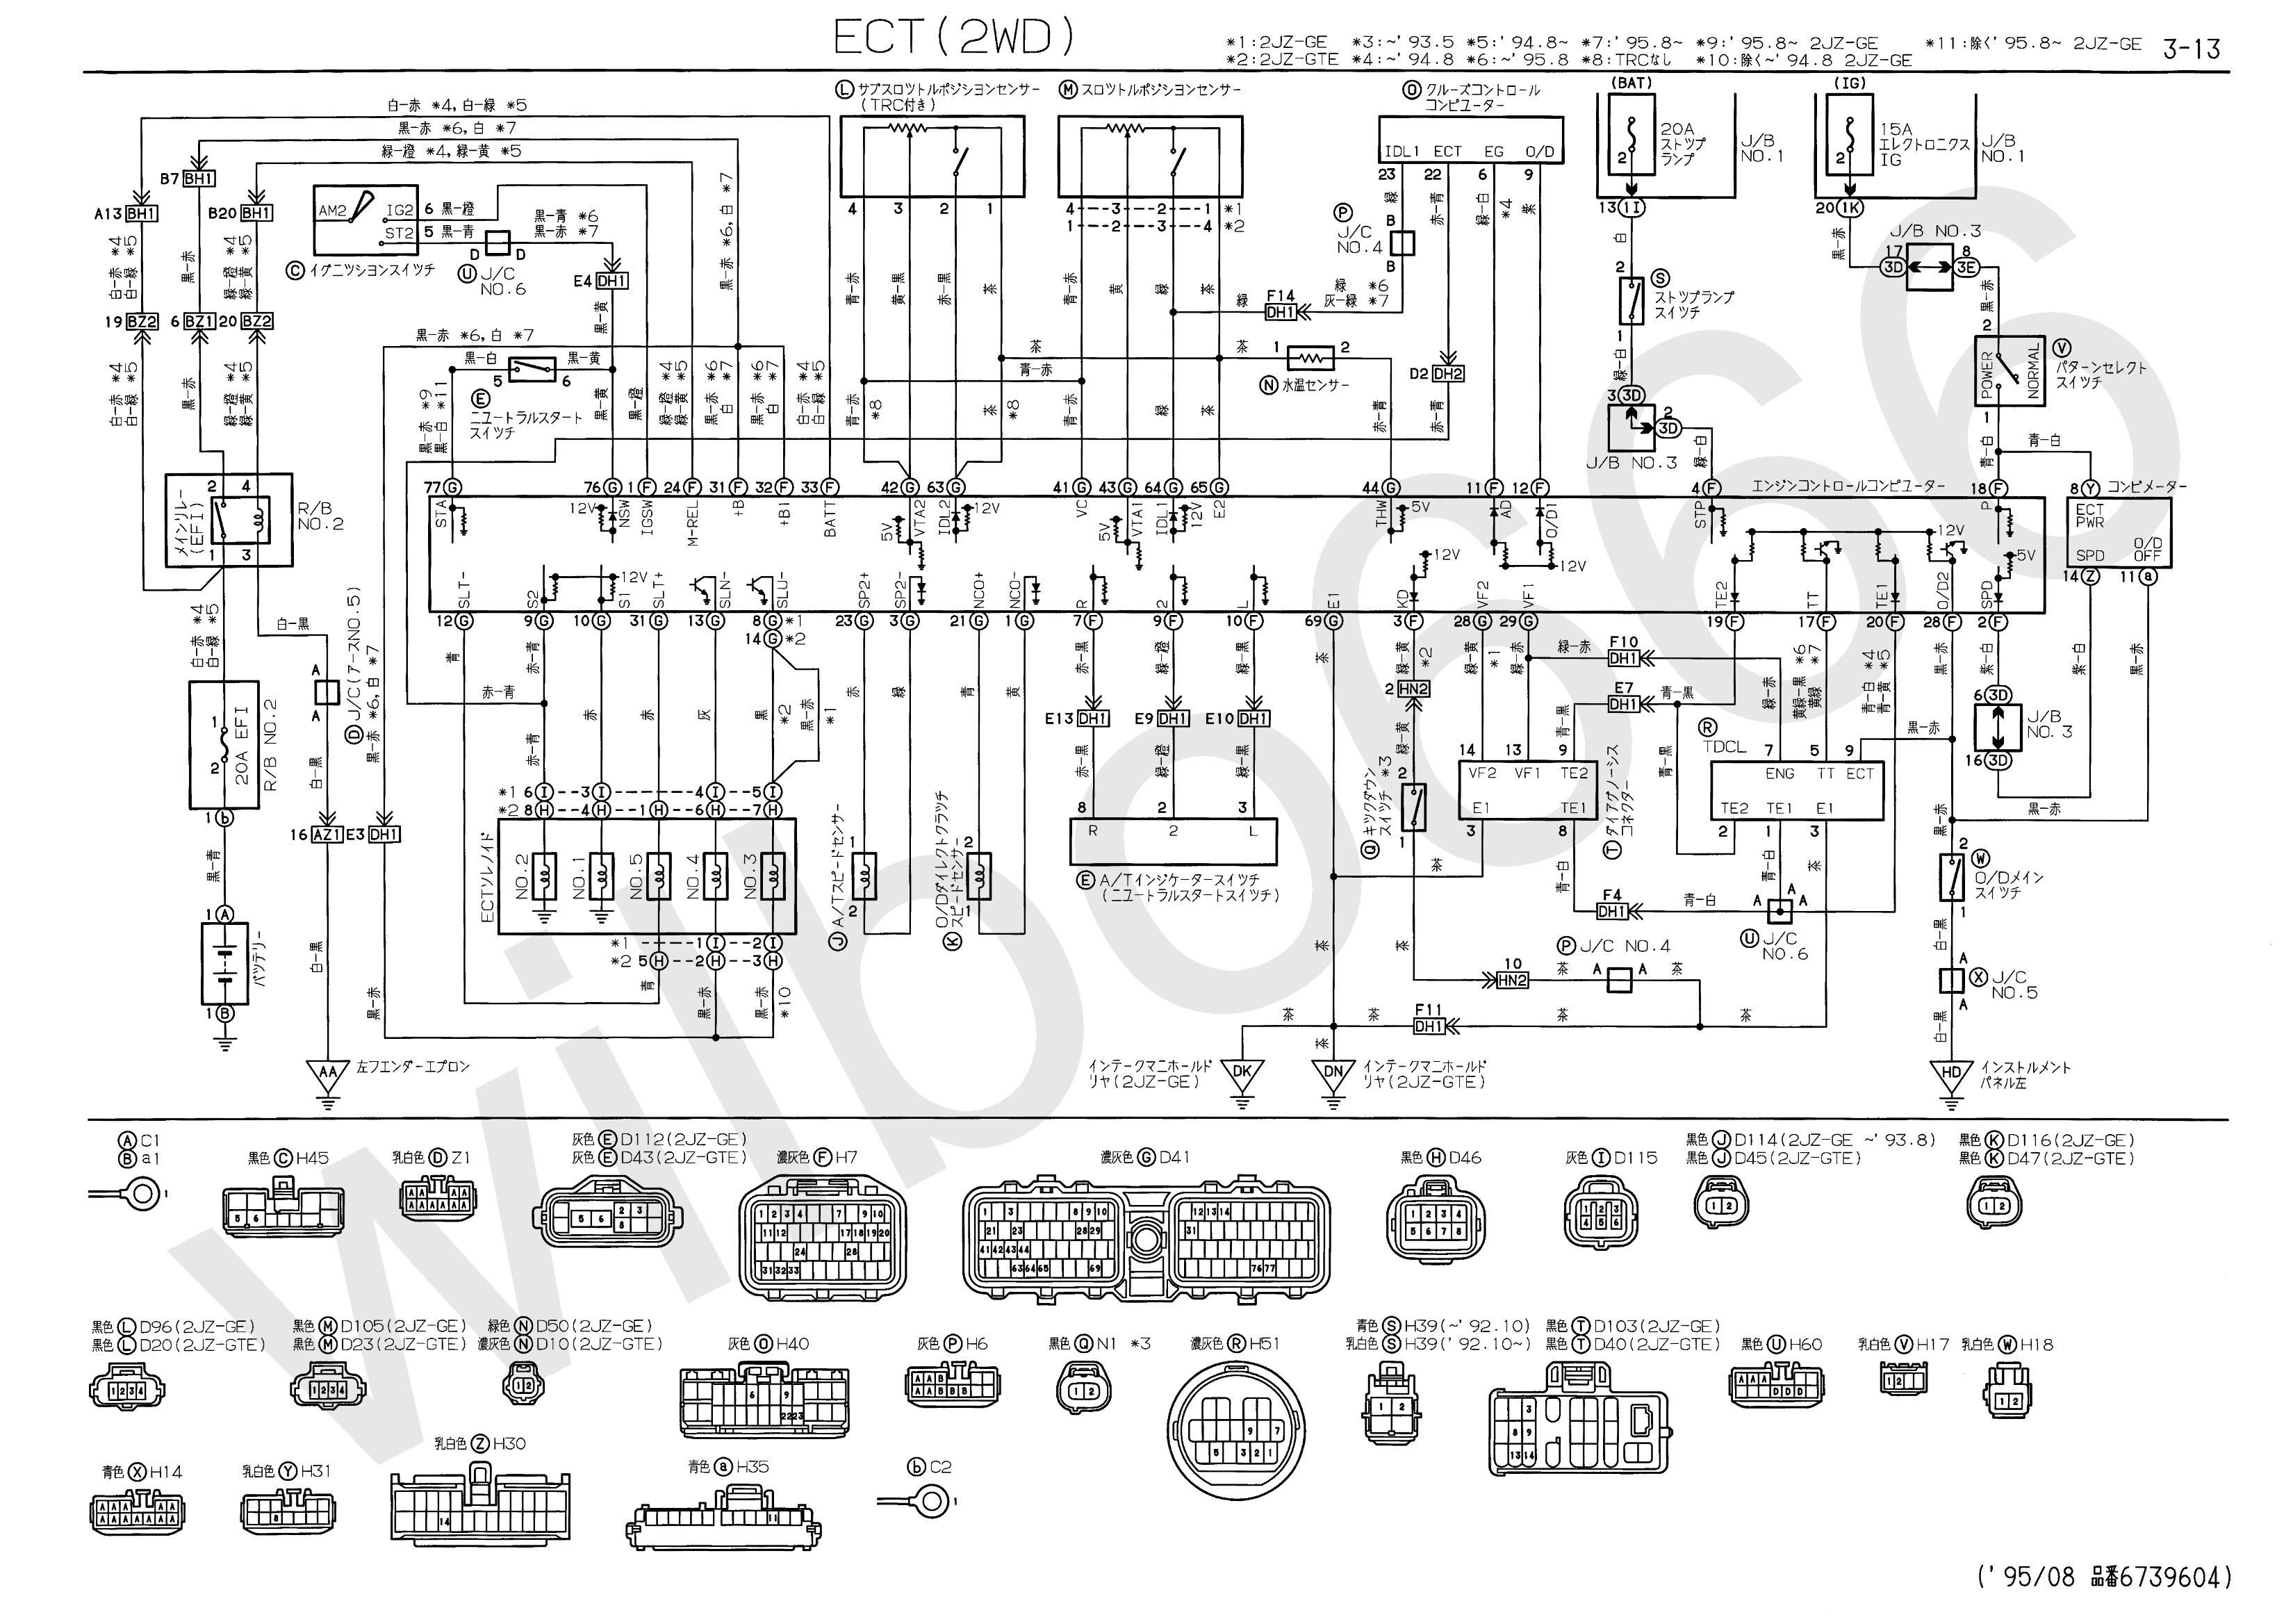 toyota wiring diagrams 01 charts free diagram images toyota wiring diagrams car parts download [ 3300 x 2337 Pixel ]